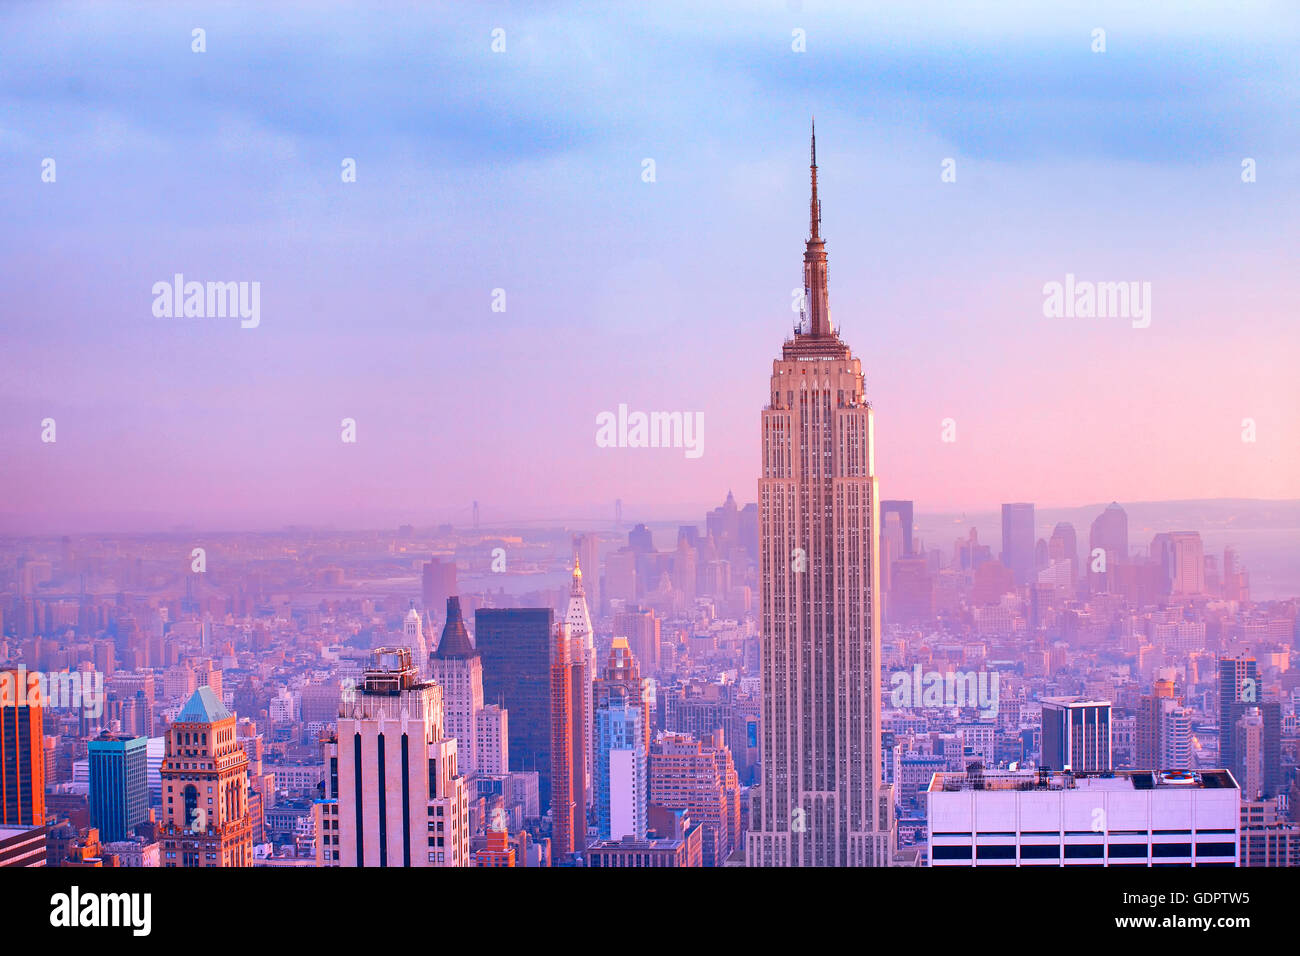 Skyline di Manhattan a New York City Immagini Stock